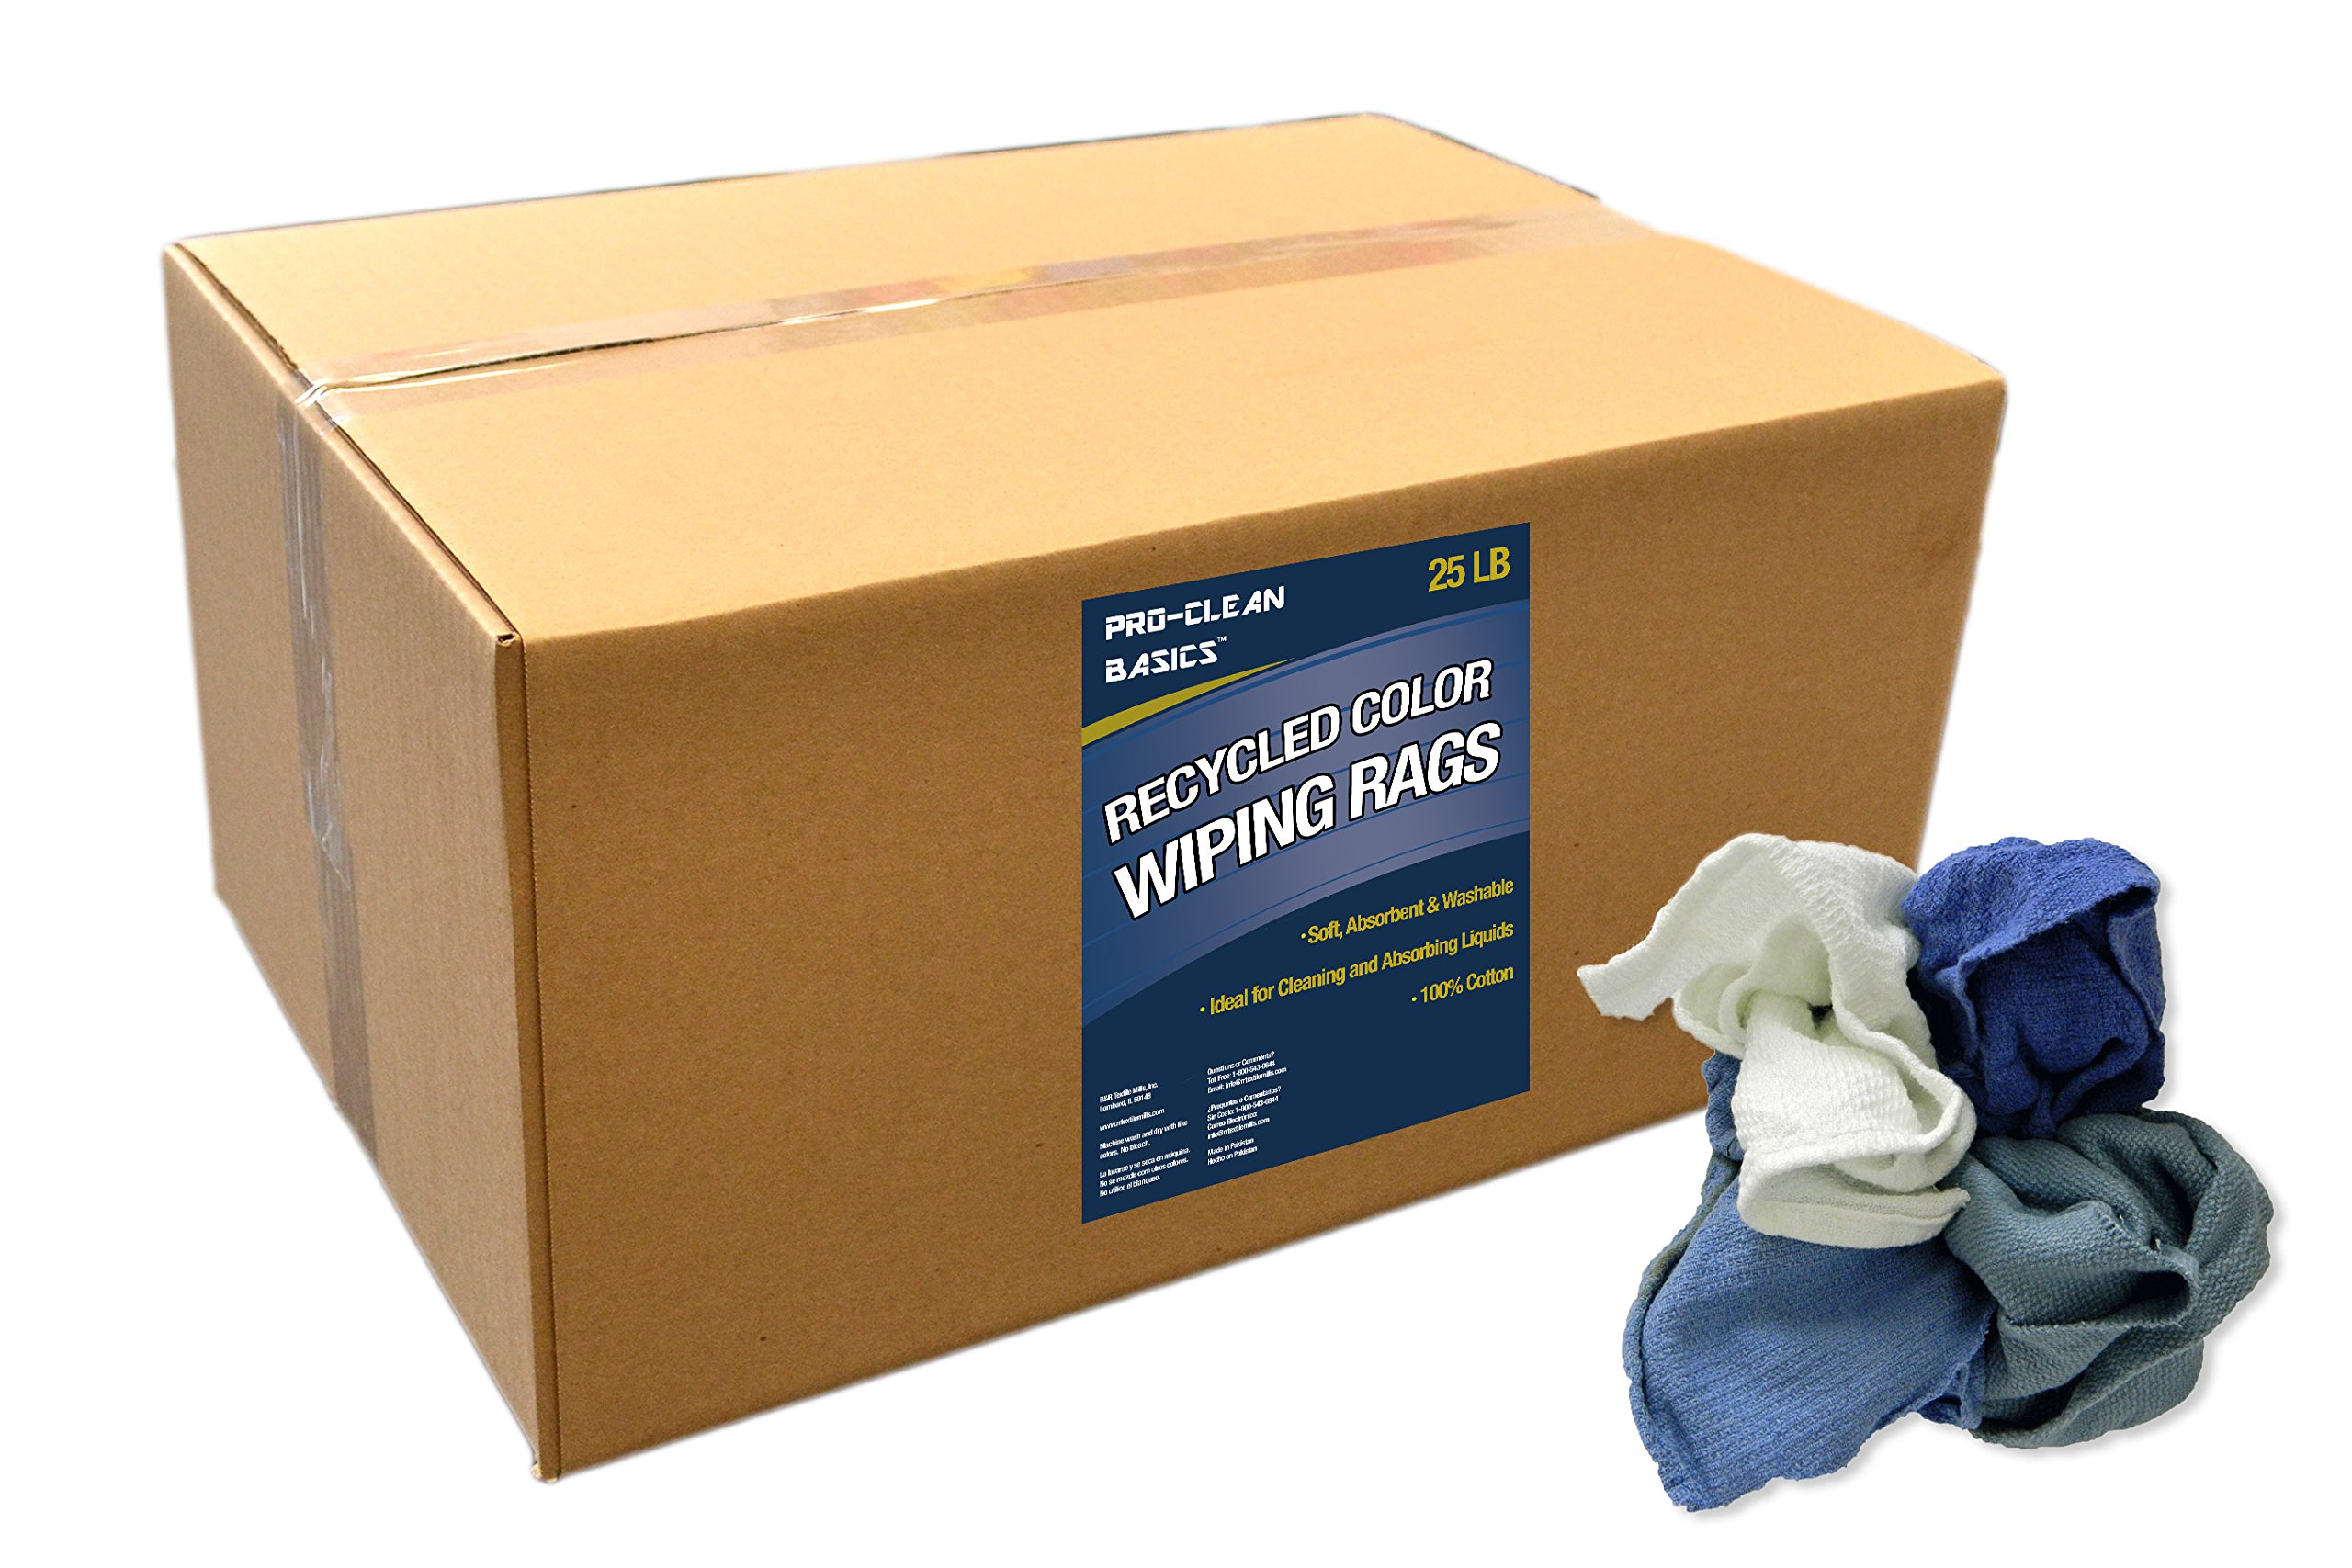 Pro-Clean Basics 99601 Recycled Color Woven Wiping Rags, 25 lb. Box